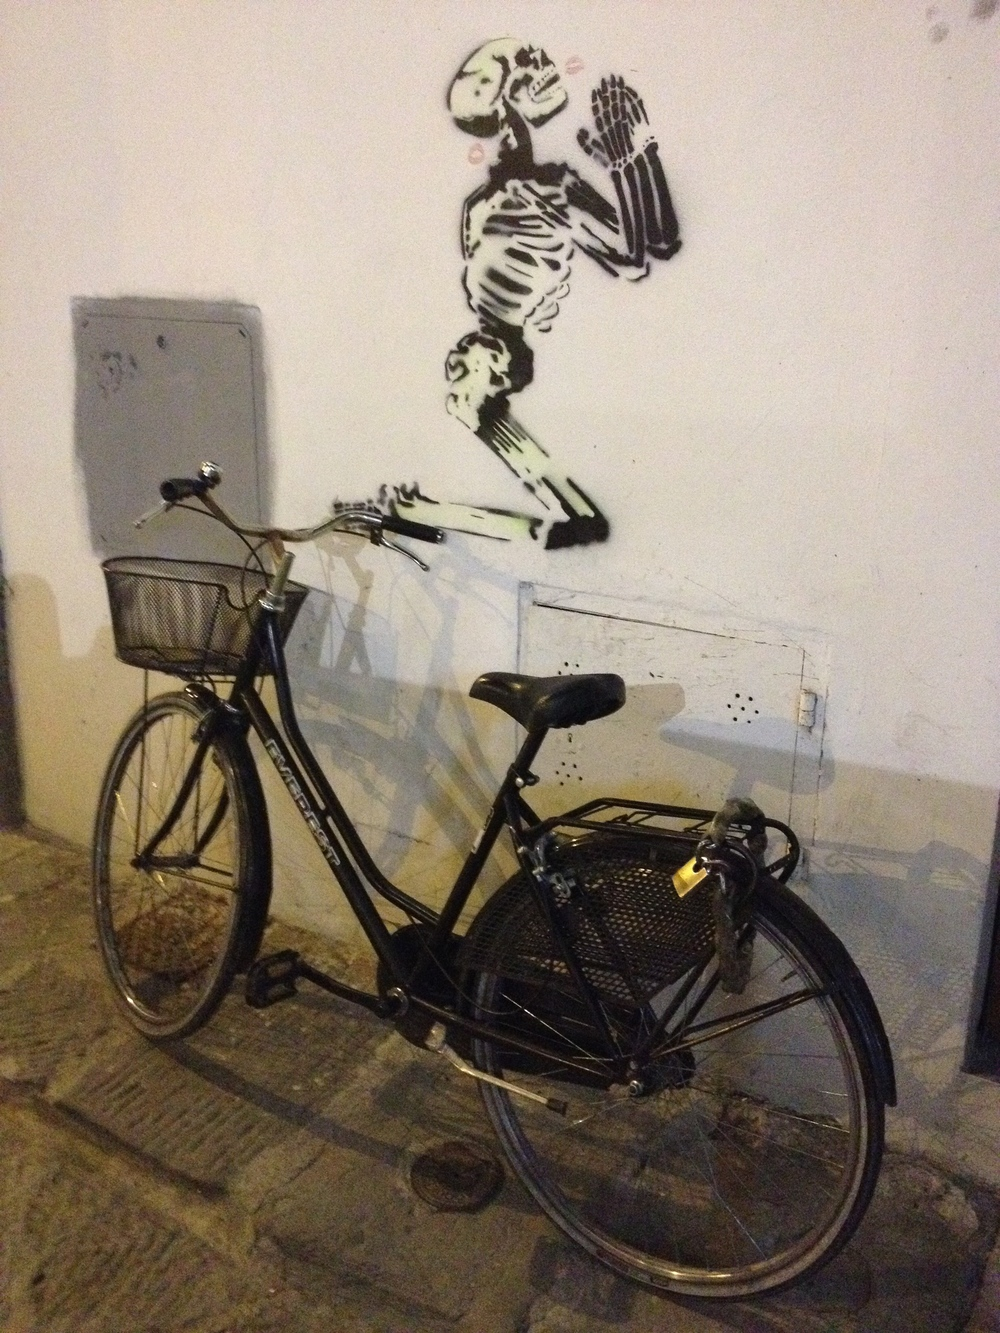 Found the juxtaposition of the bike and the skeleton figure quite provocative.